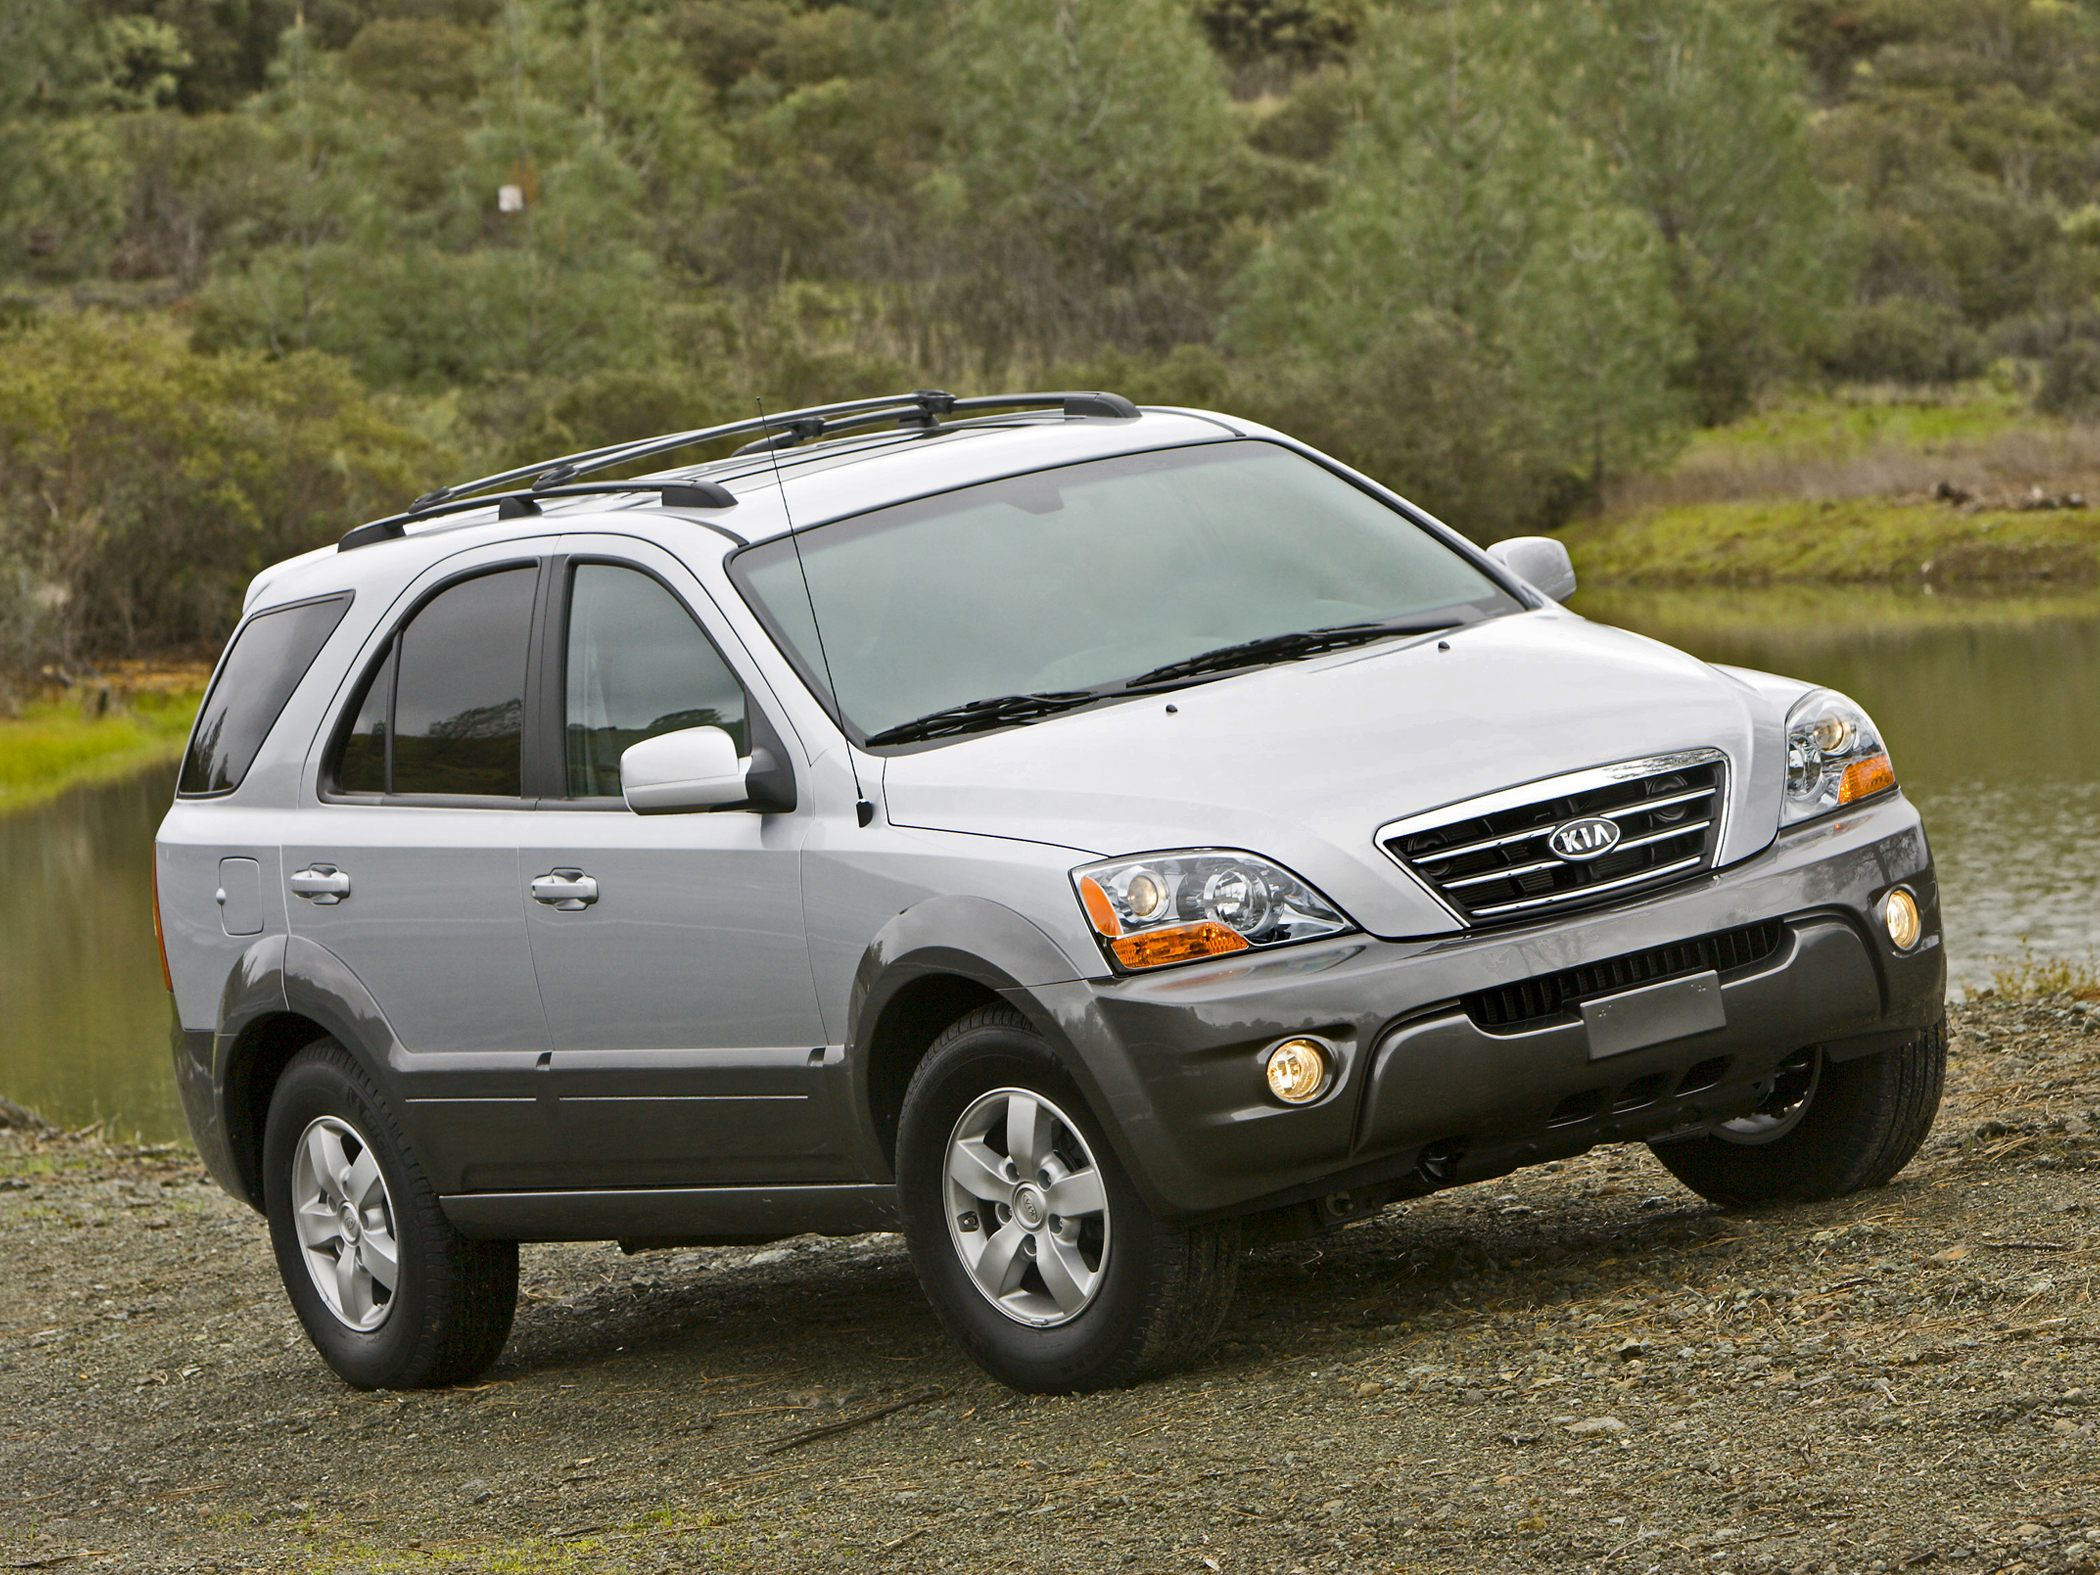 2009 Kia Sorento 3.3 related infomation,specifications - WeiLi ...